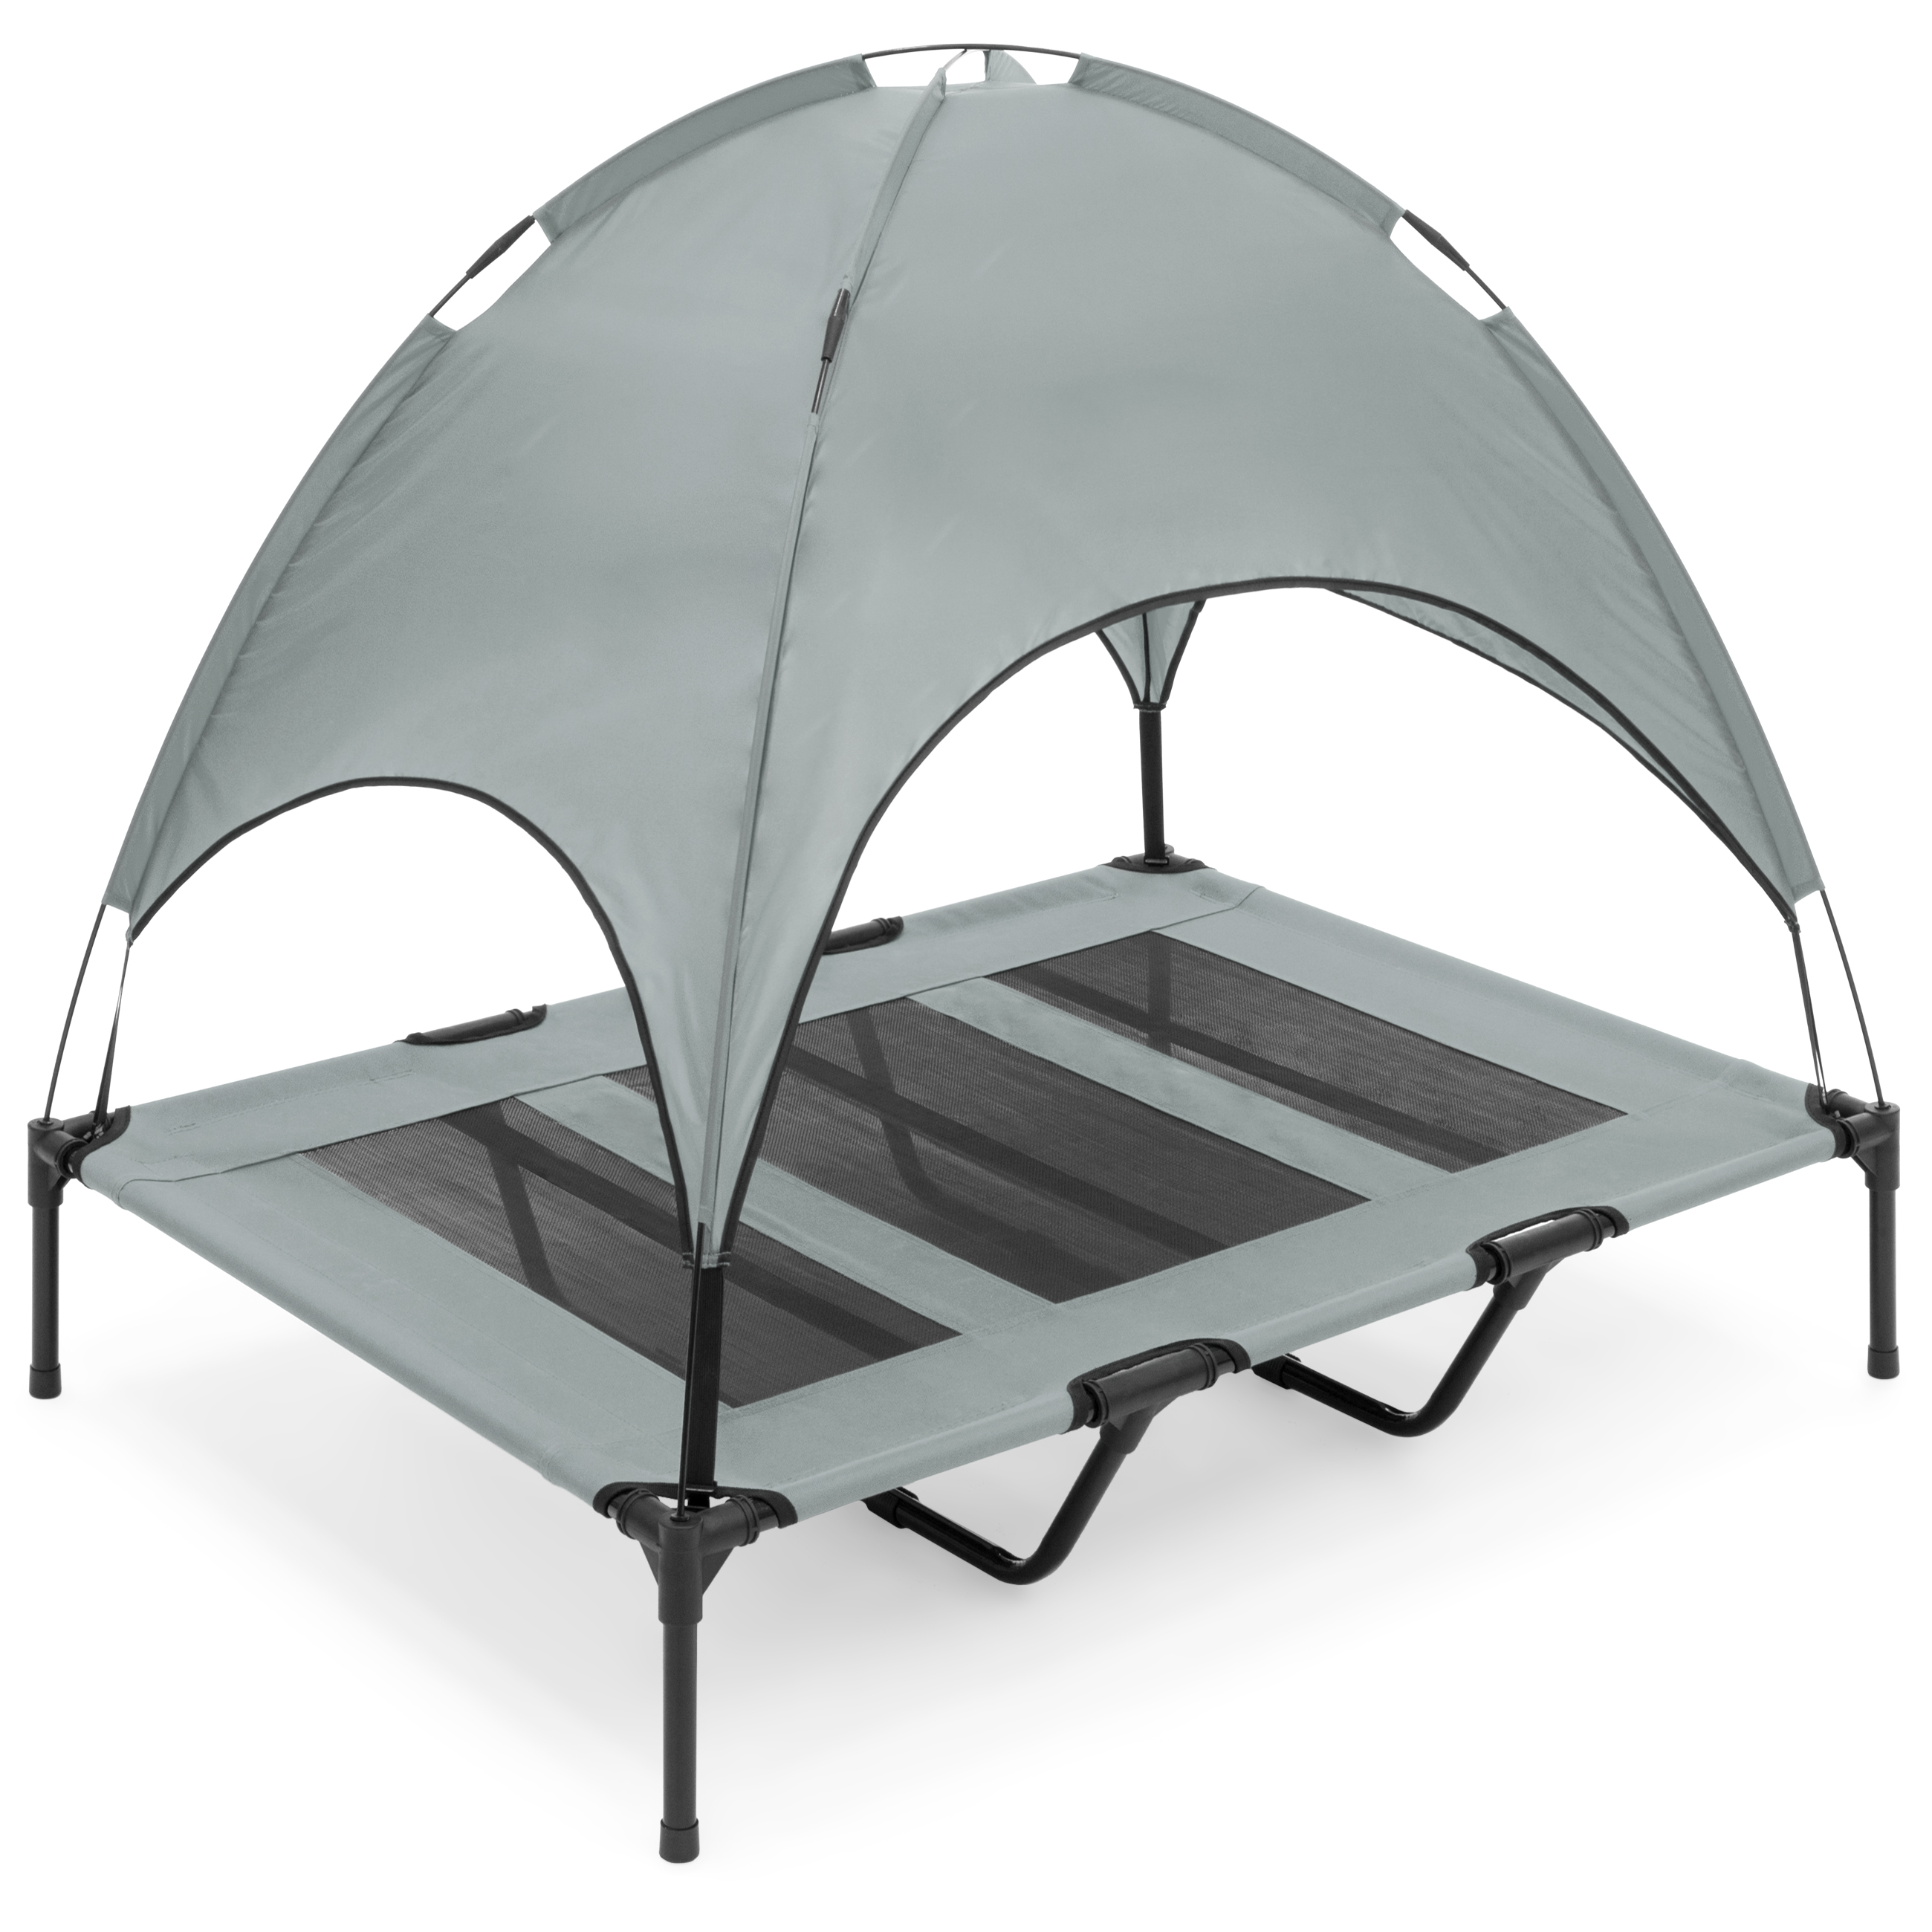 Best Choice Products 48in Outdoor Raised Mesh Cot Cooling Dog Pet Bed for Camping, Beach w/ Removable Canopy, Travel Bag - Gray